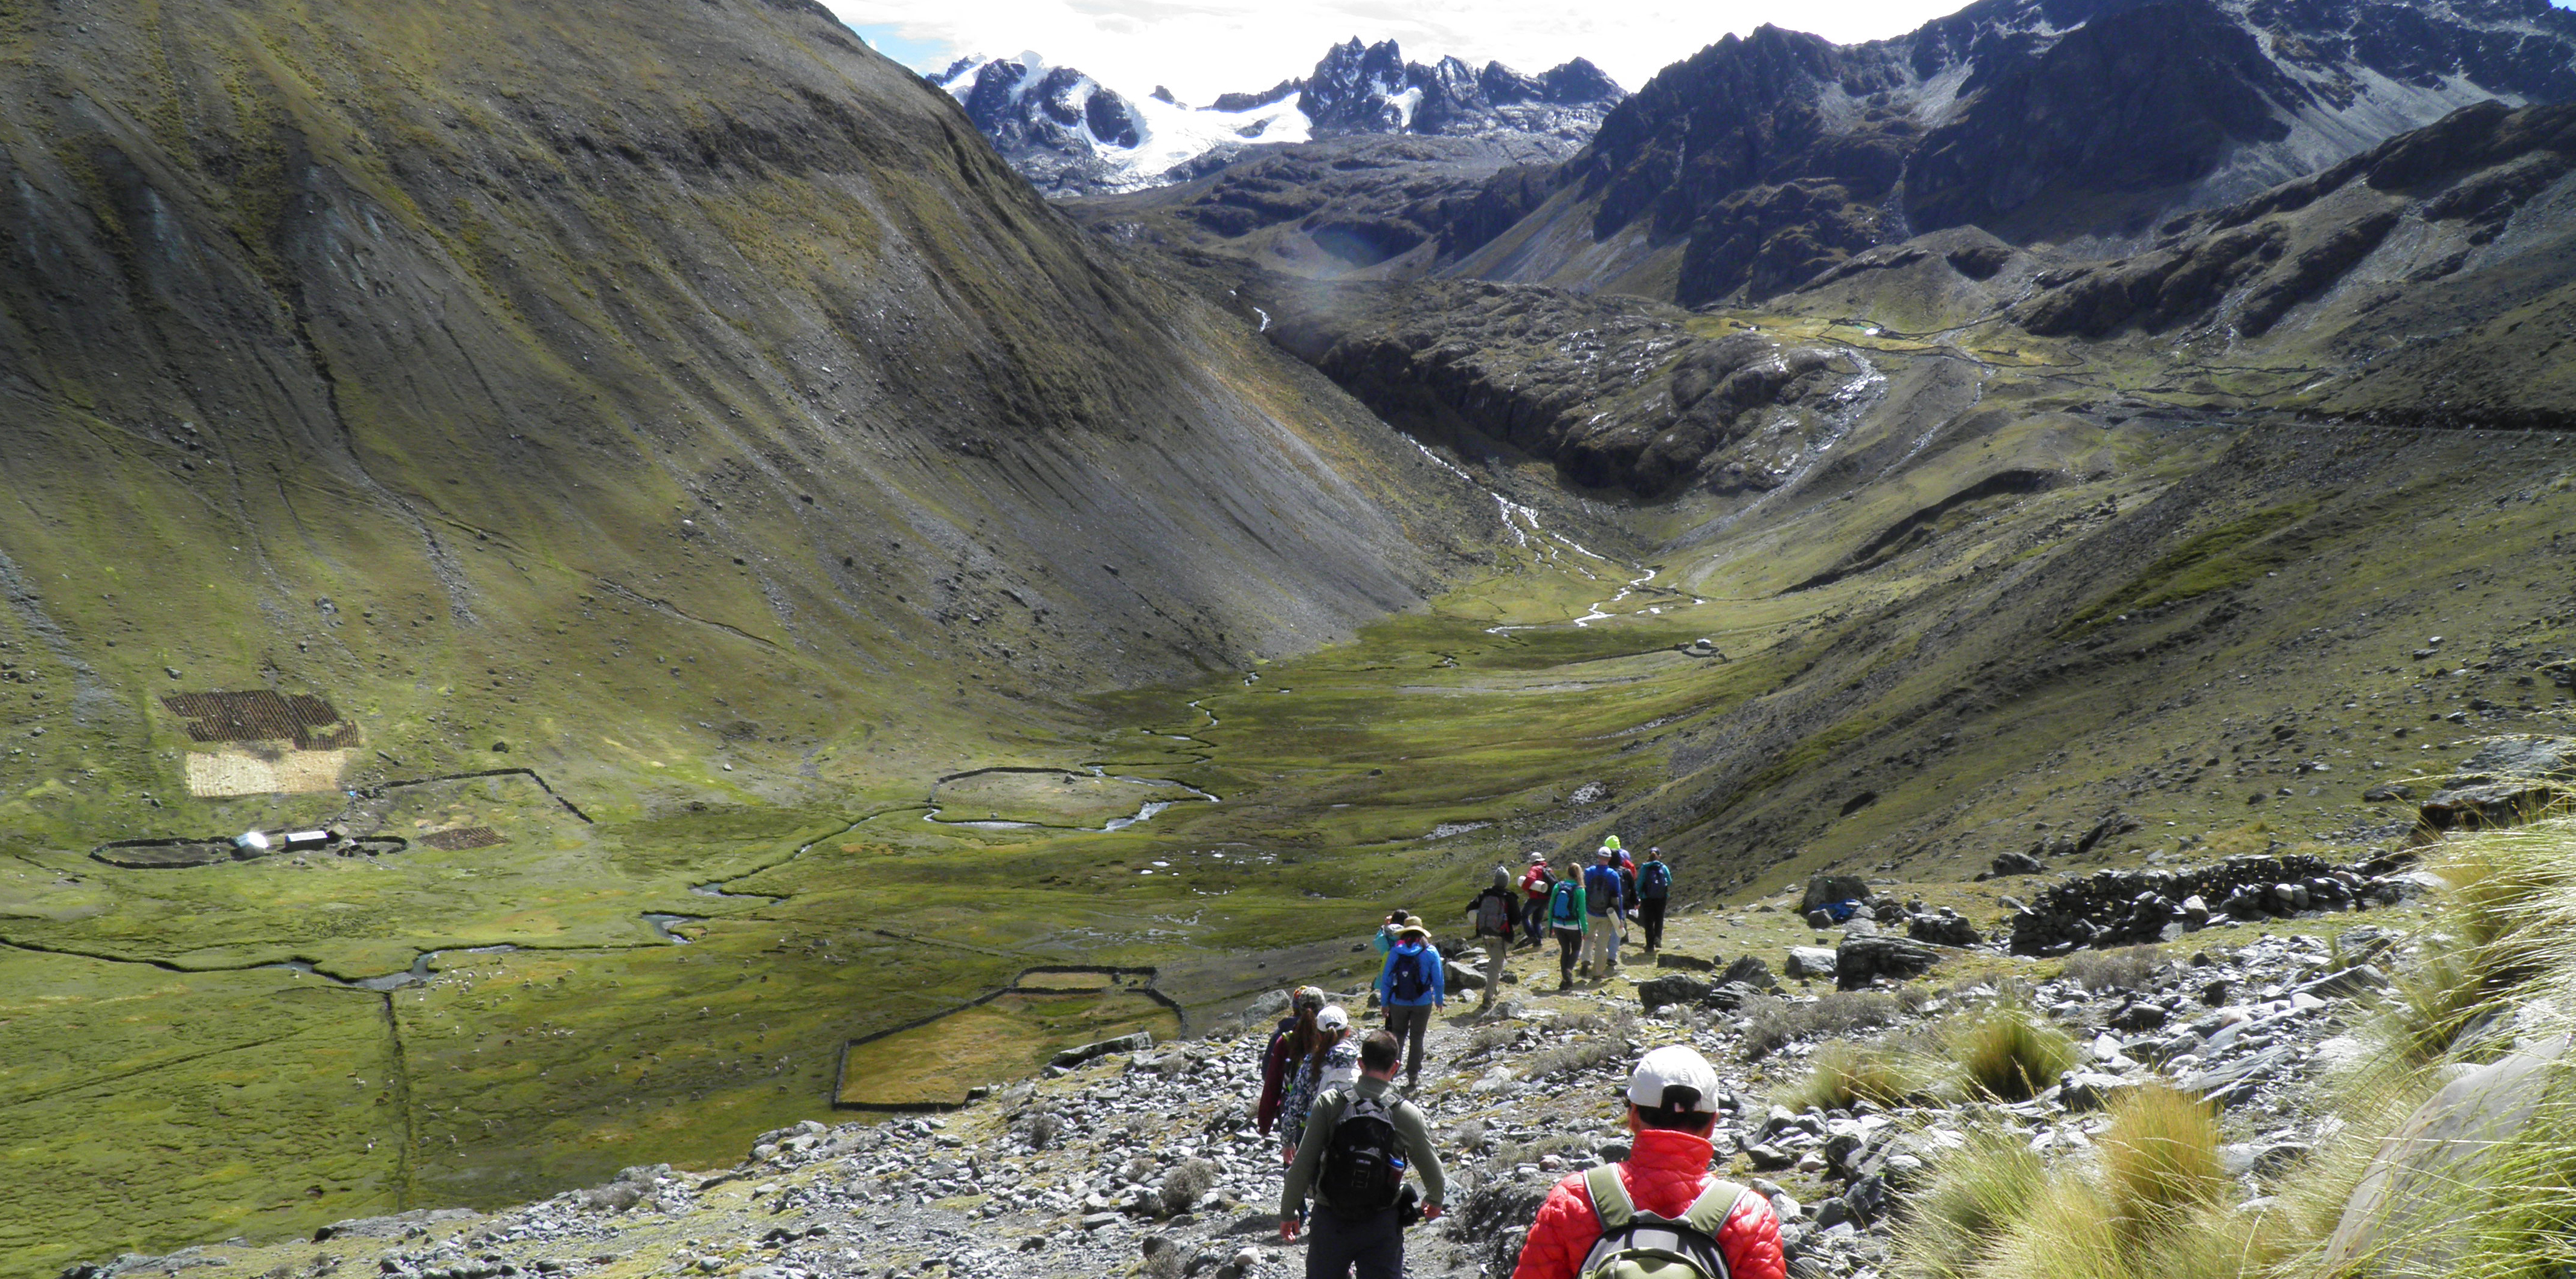 Students trekking down mountainside on trip to Peru